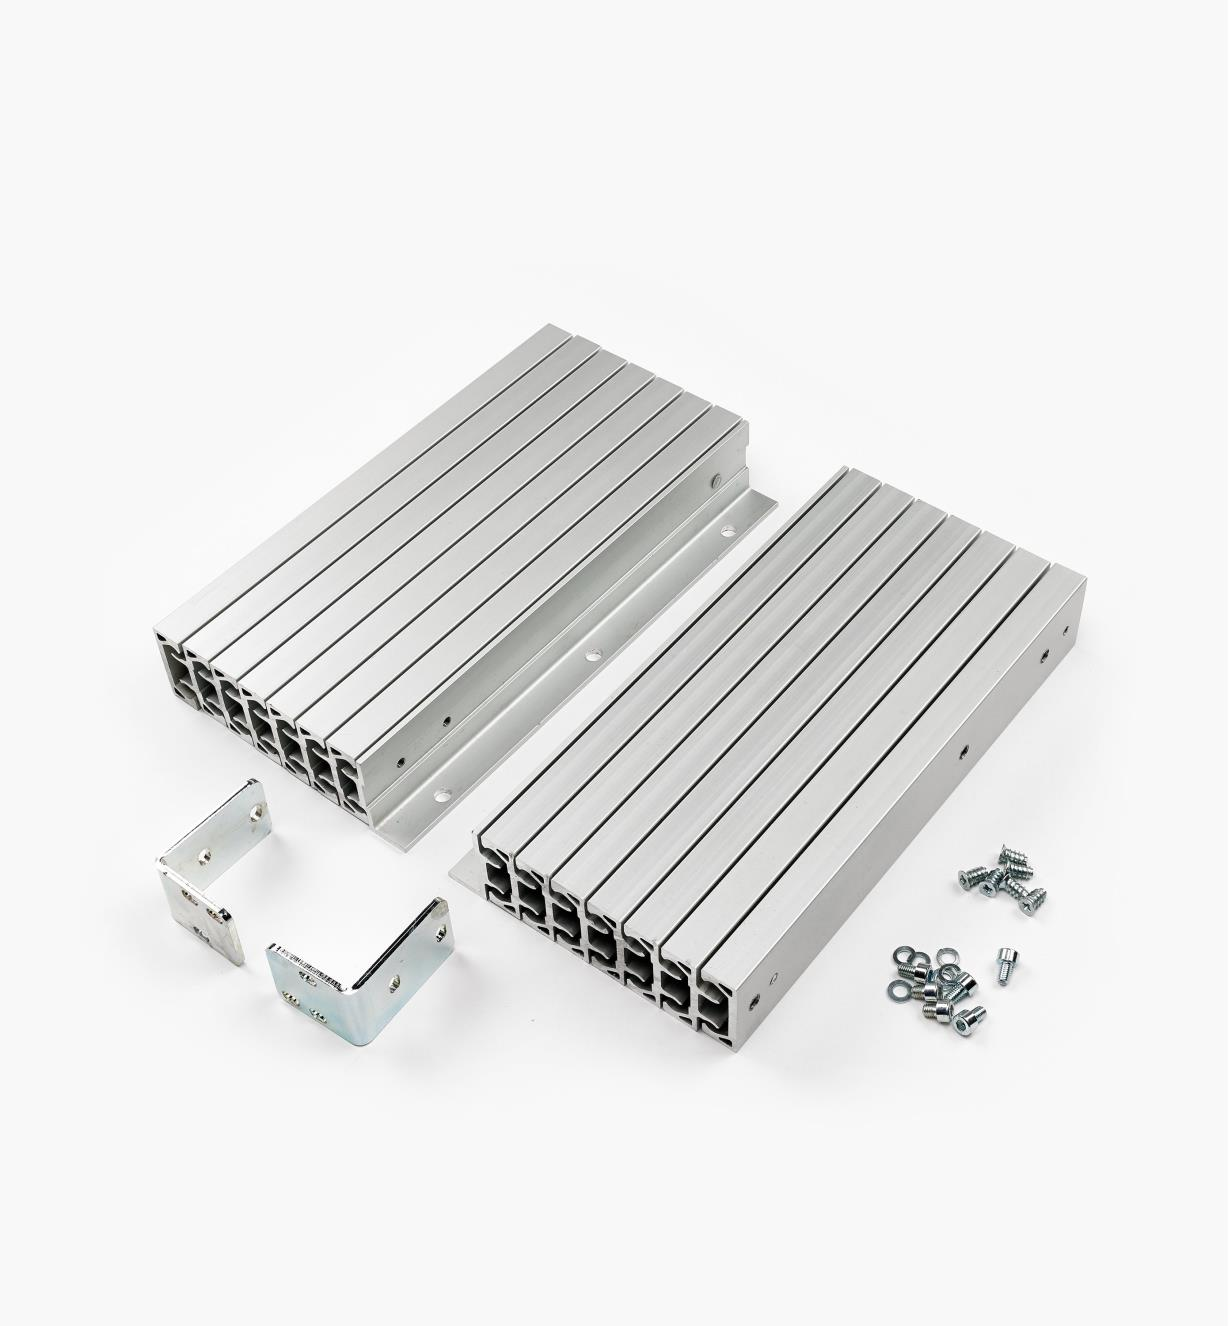 17K1802 - Surface Extension Slides, pair